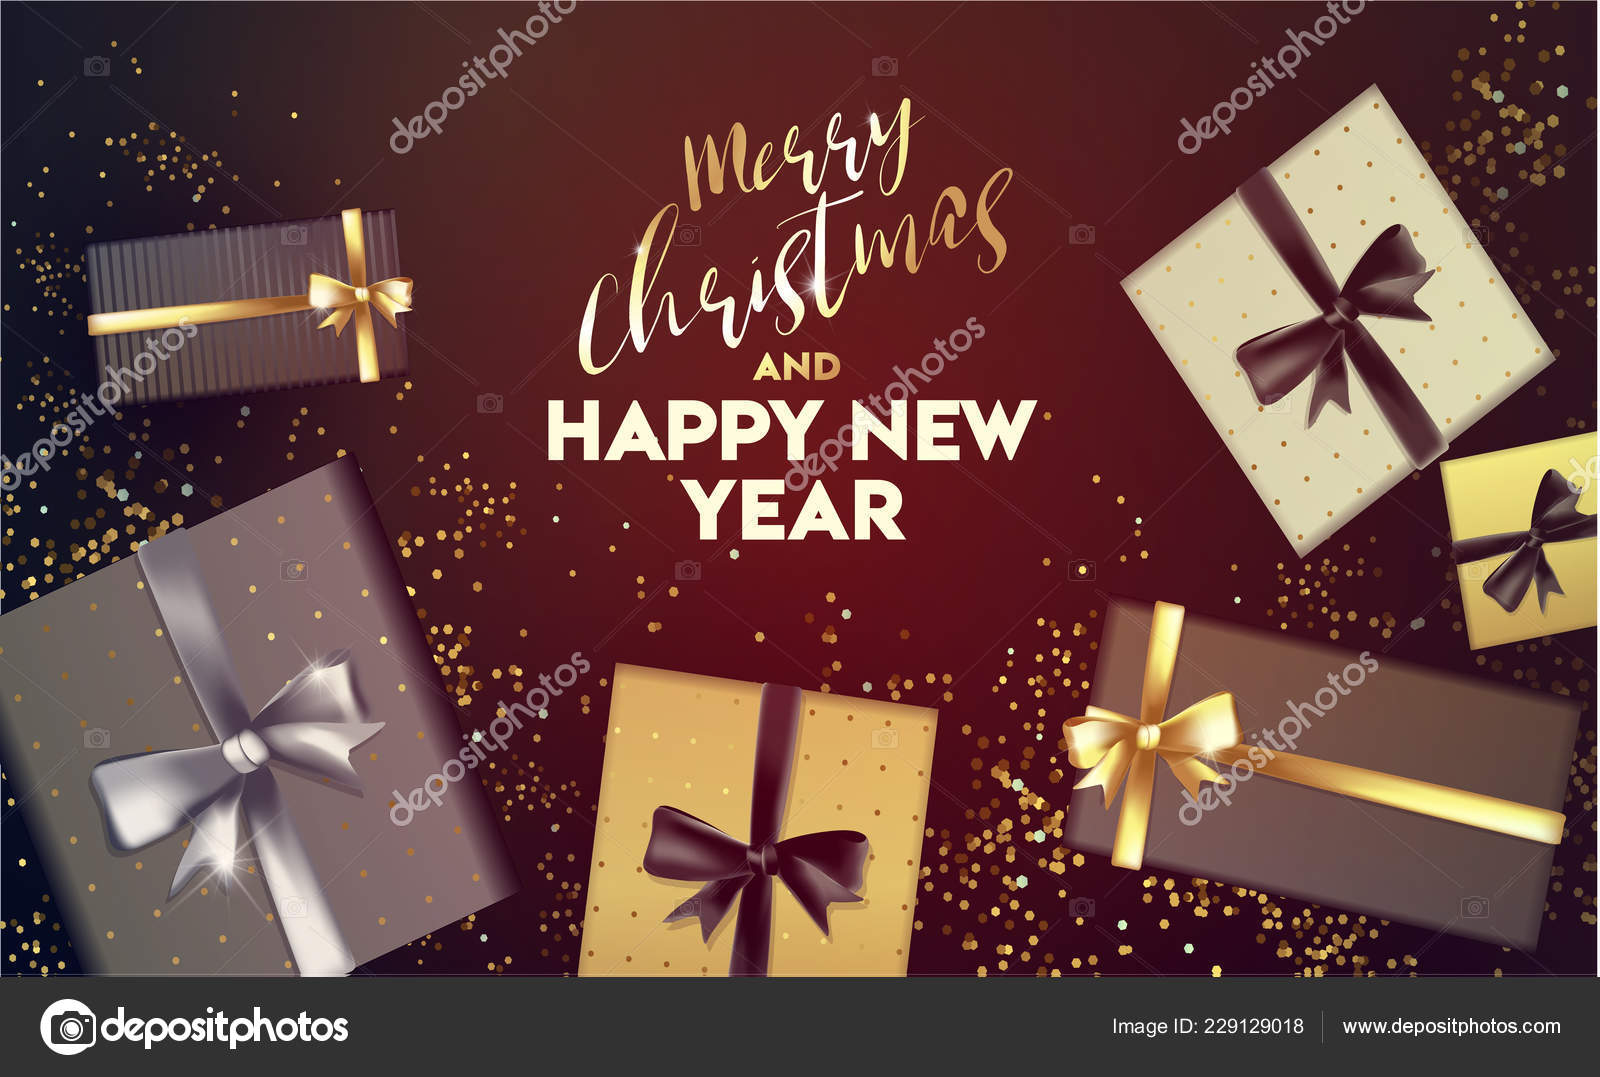 Happy New Year 2019 Merry Christmas Happy New Year Vector